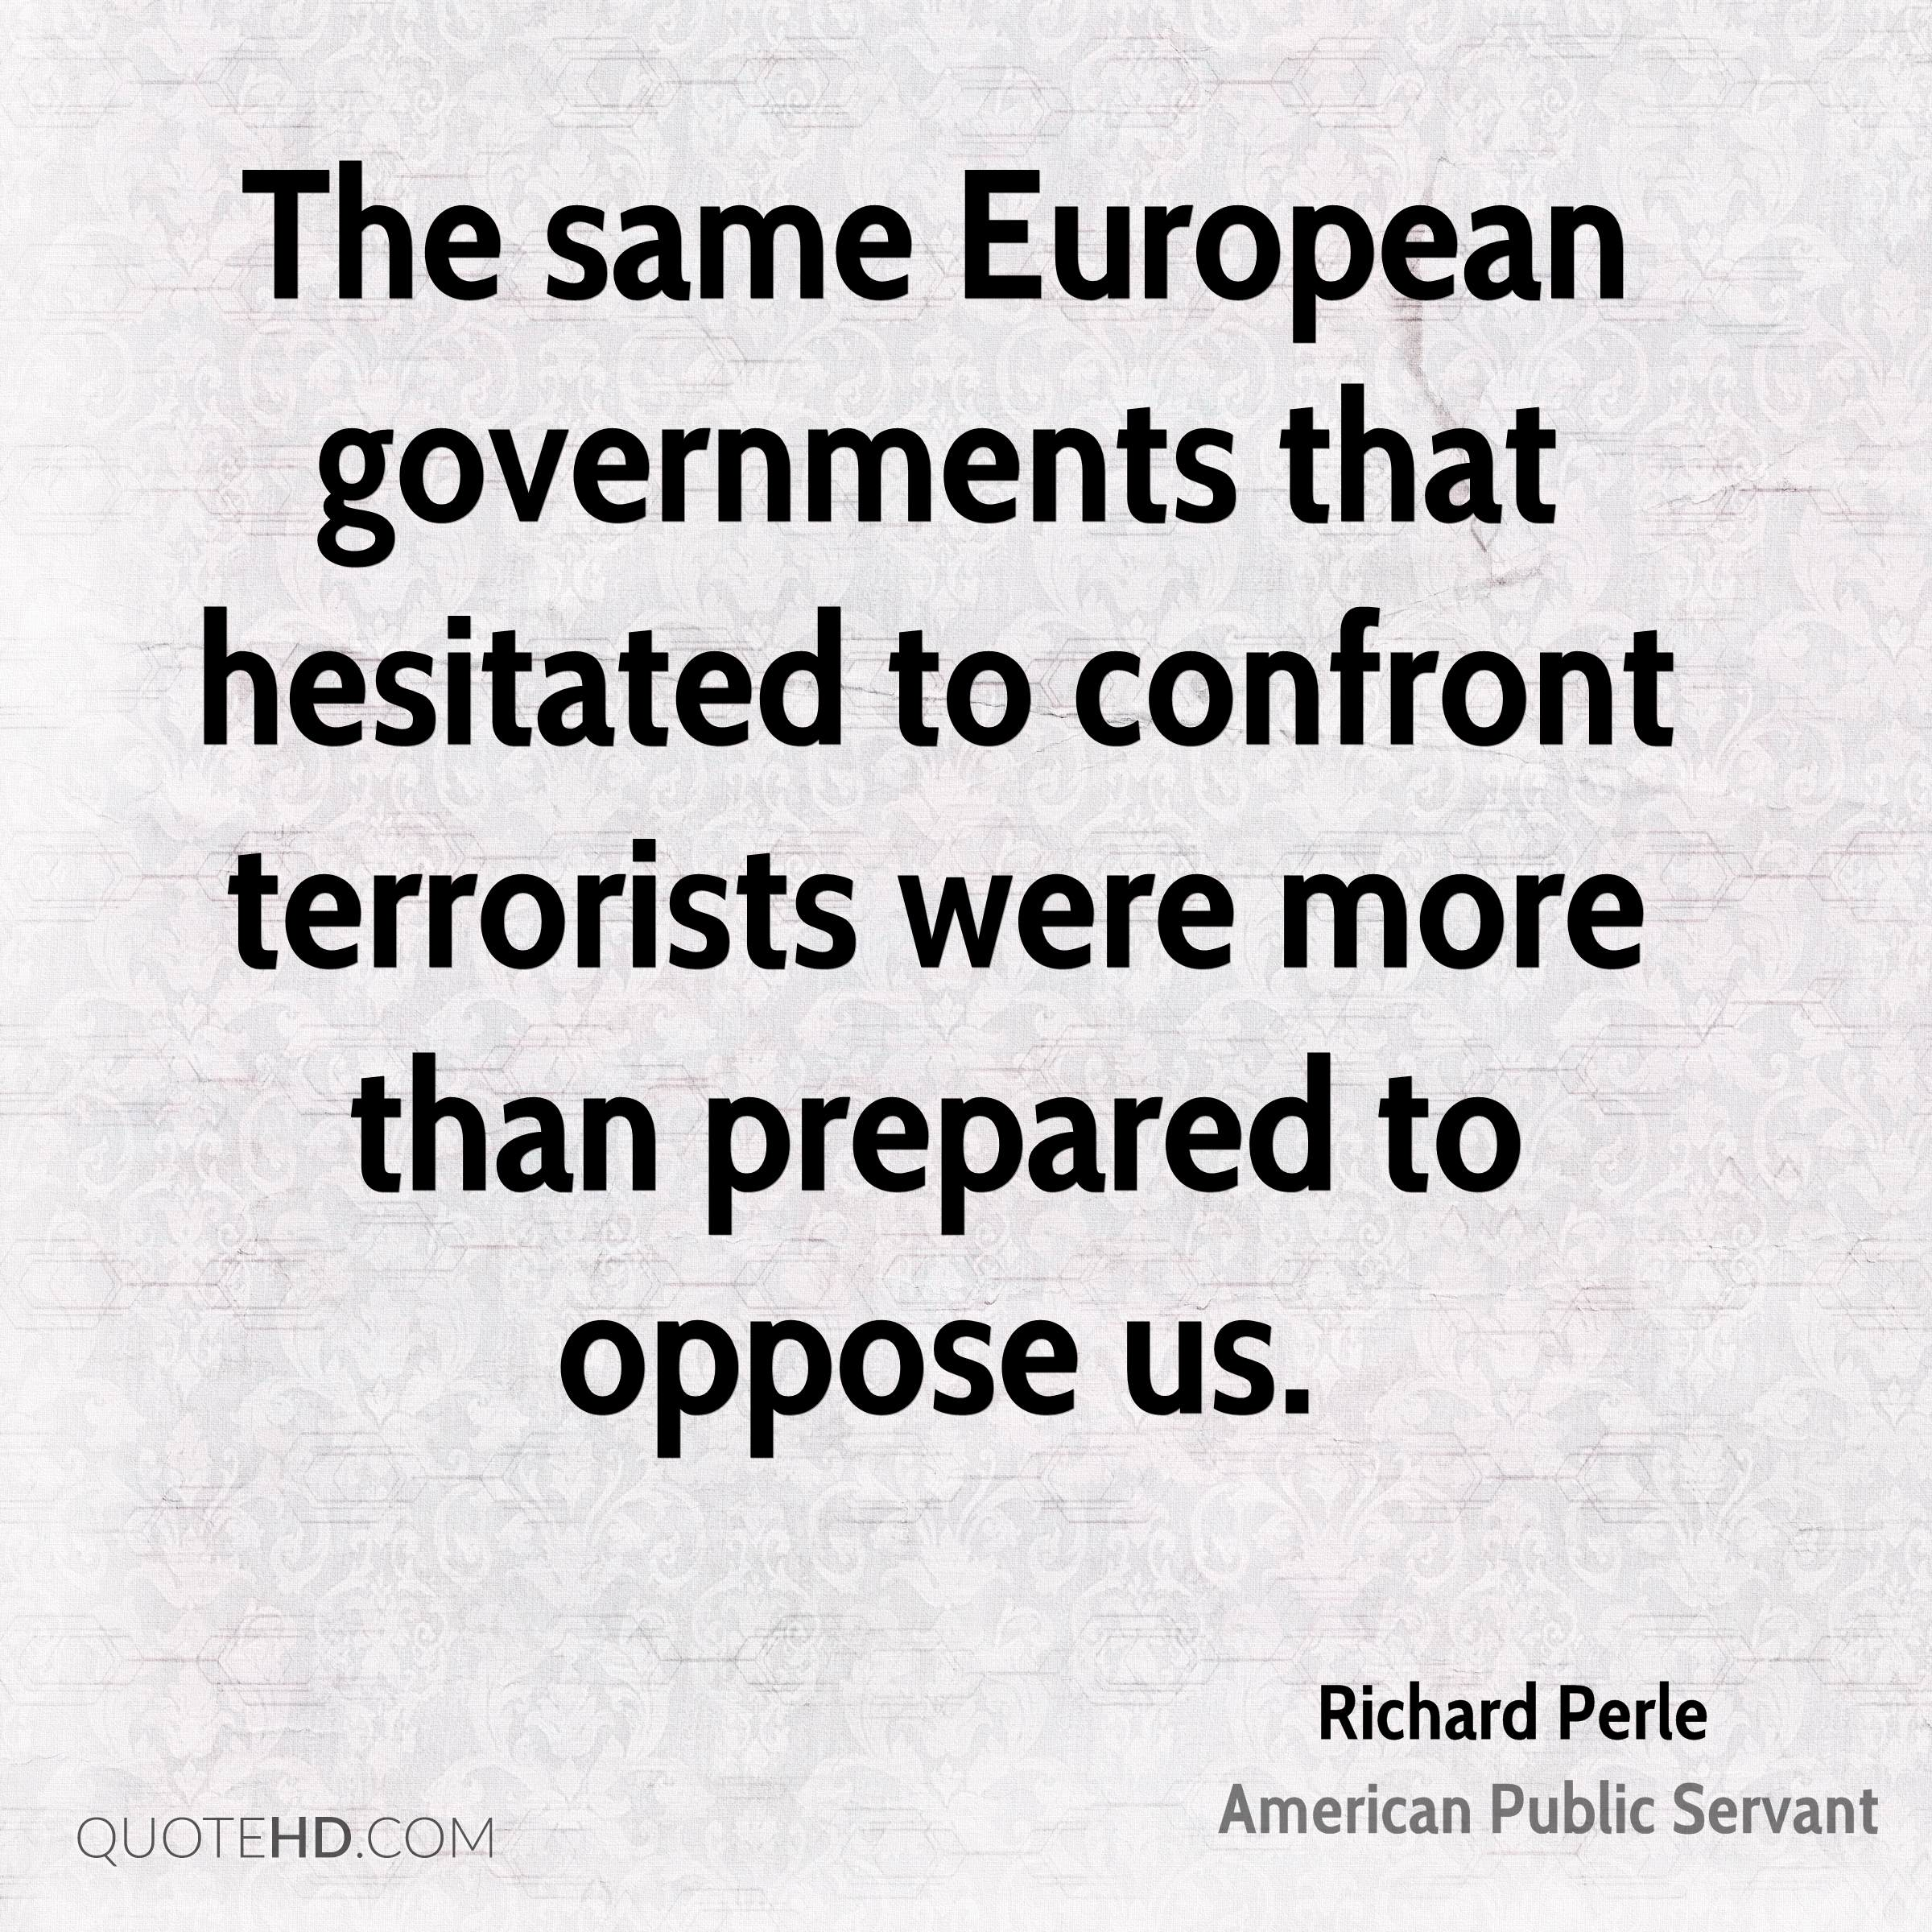 The same European governments that hesitated to confront terrorists were more than prepared to oppose us.